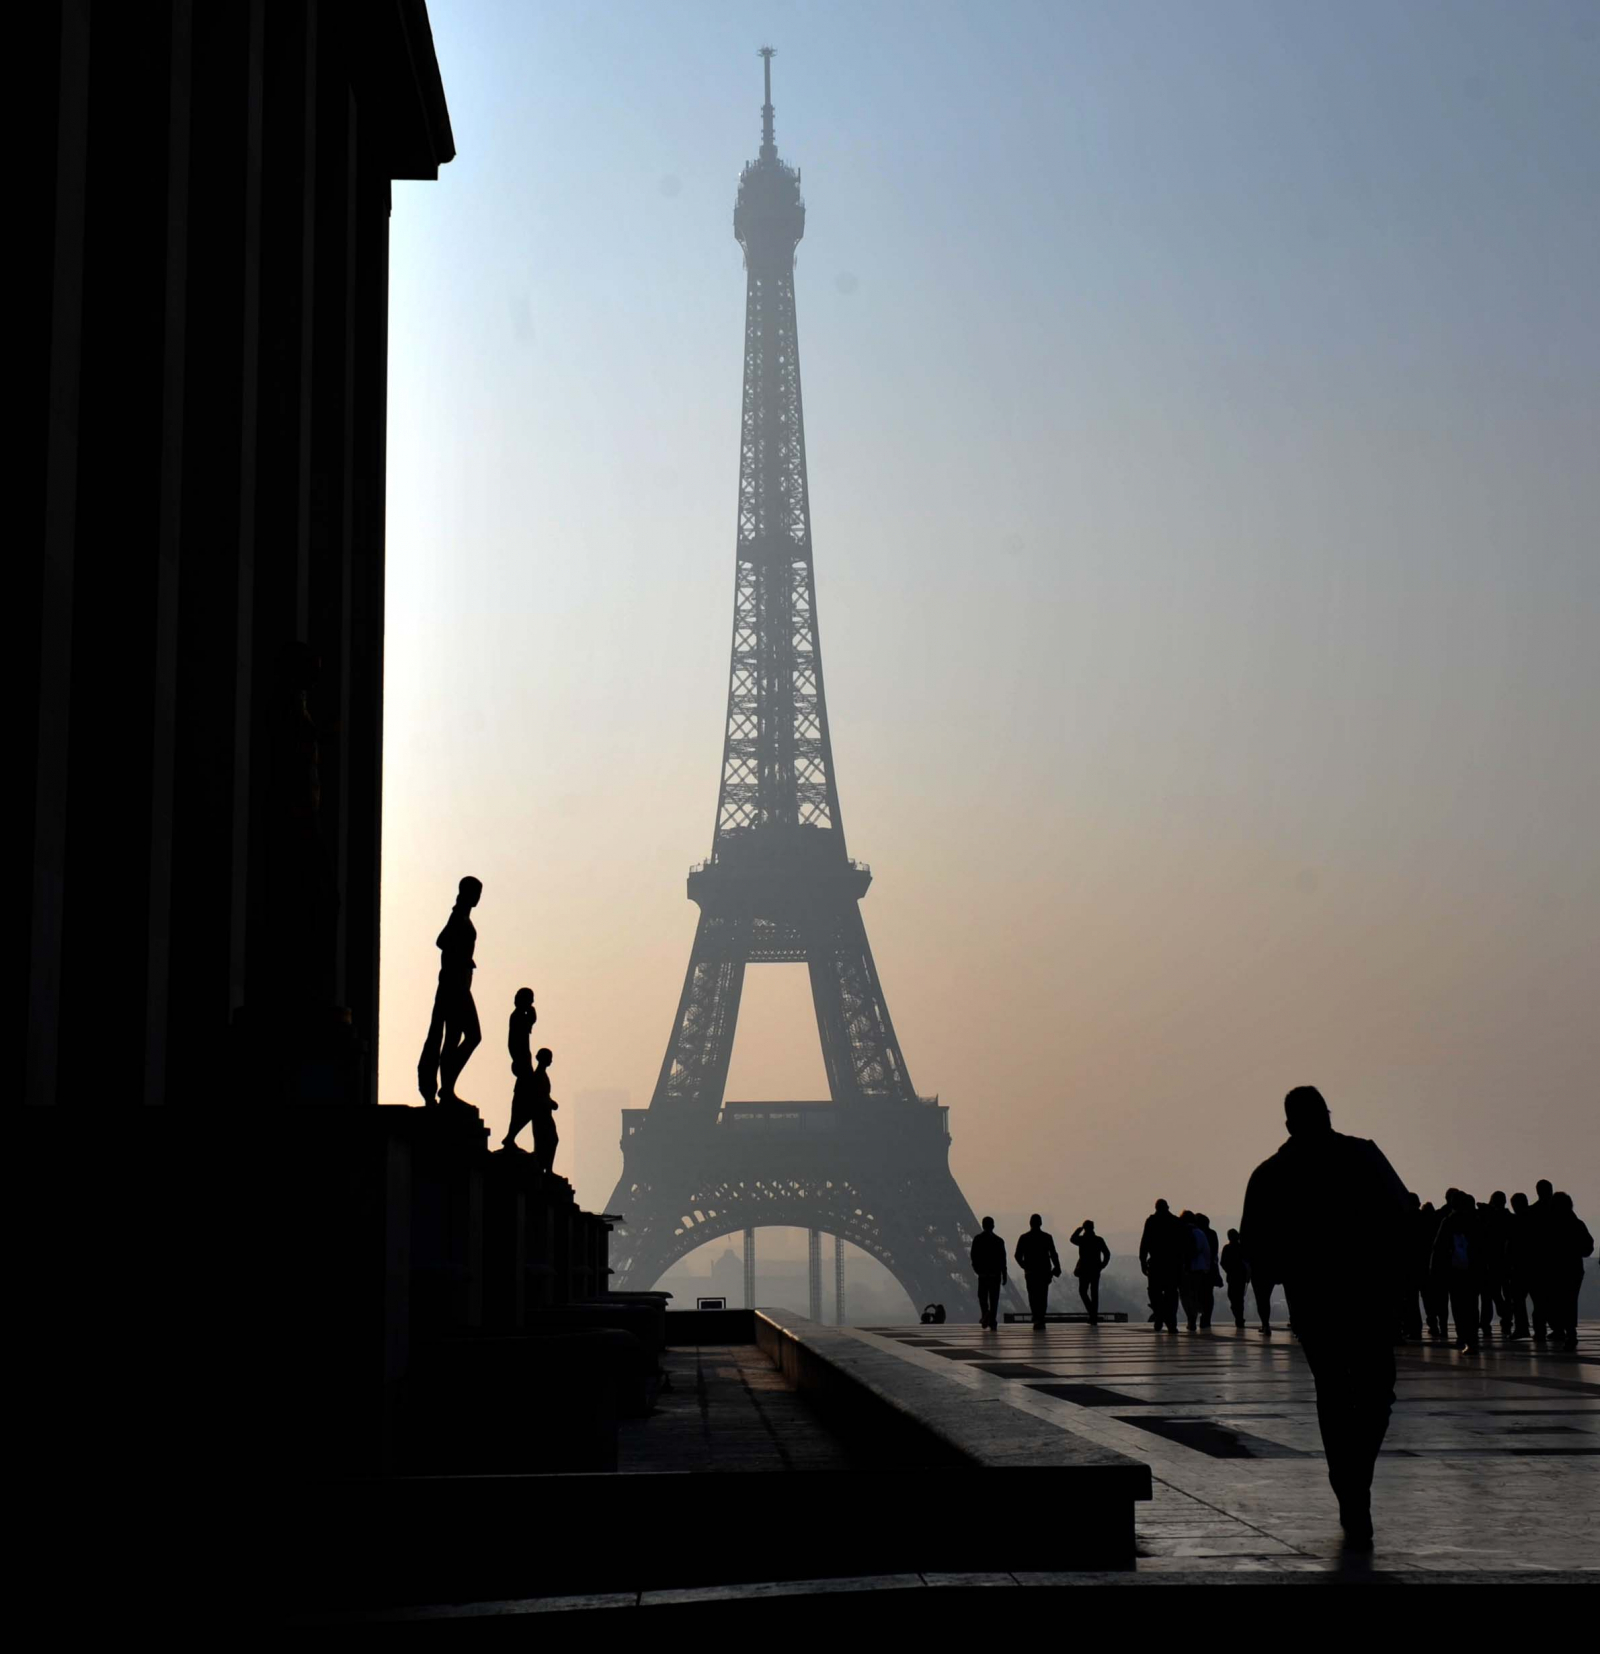 Eiffel tower to go dark in solidarity with afghan victims for Hotel near the eiffel tower